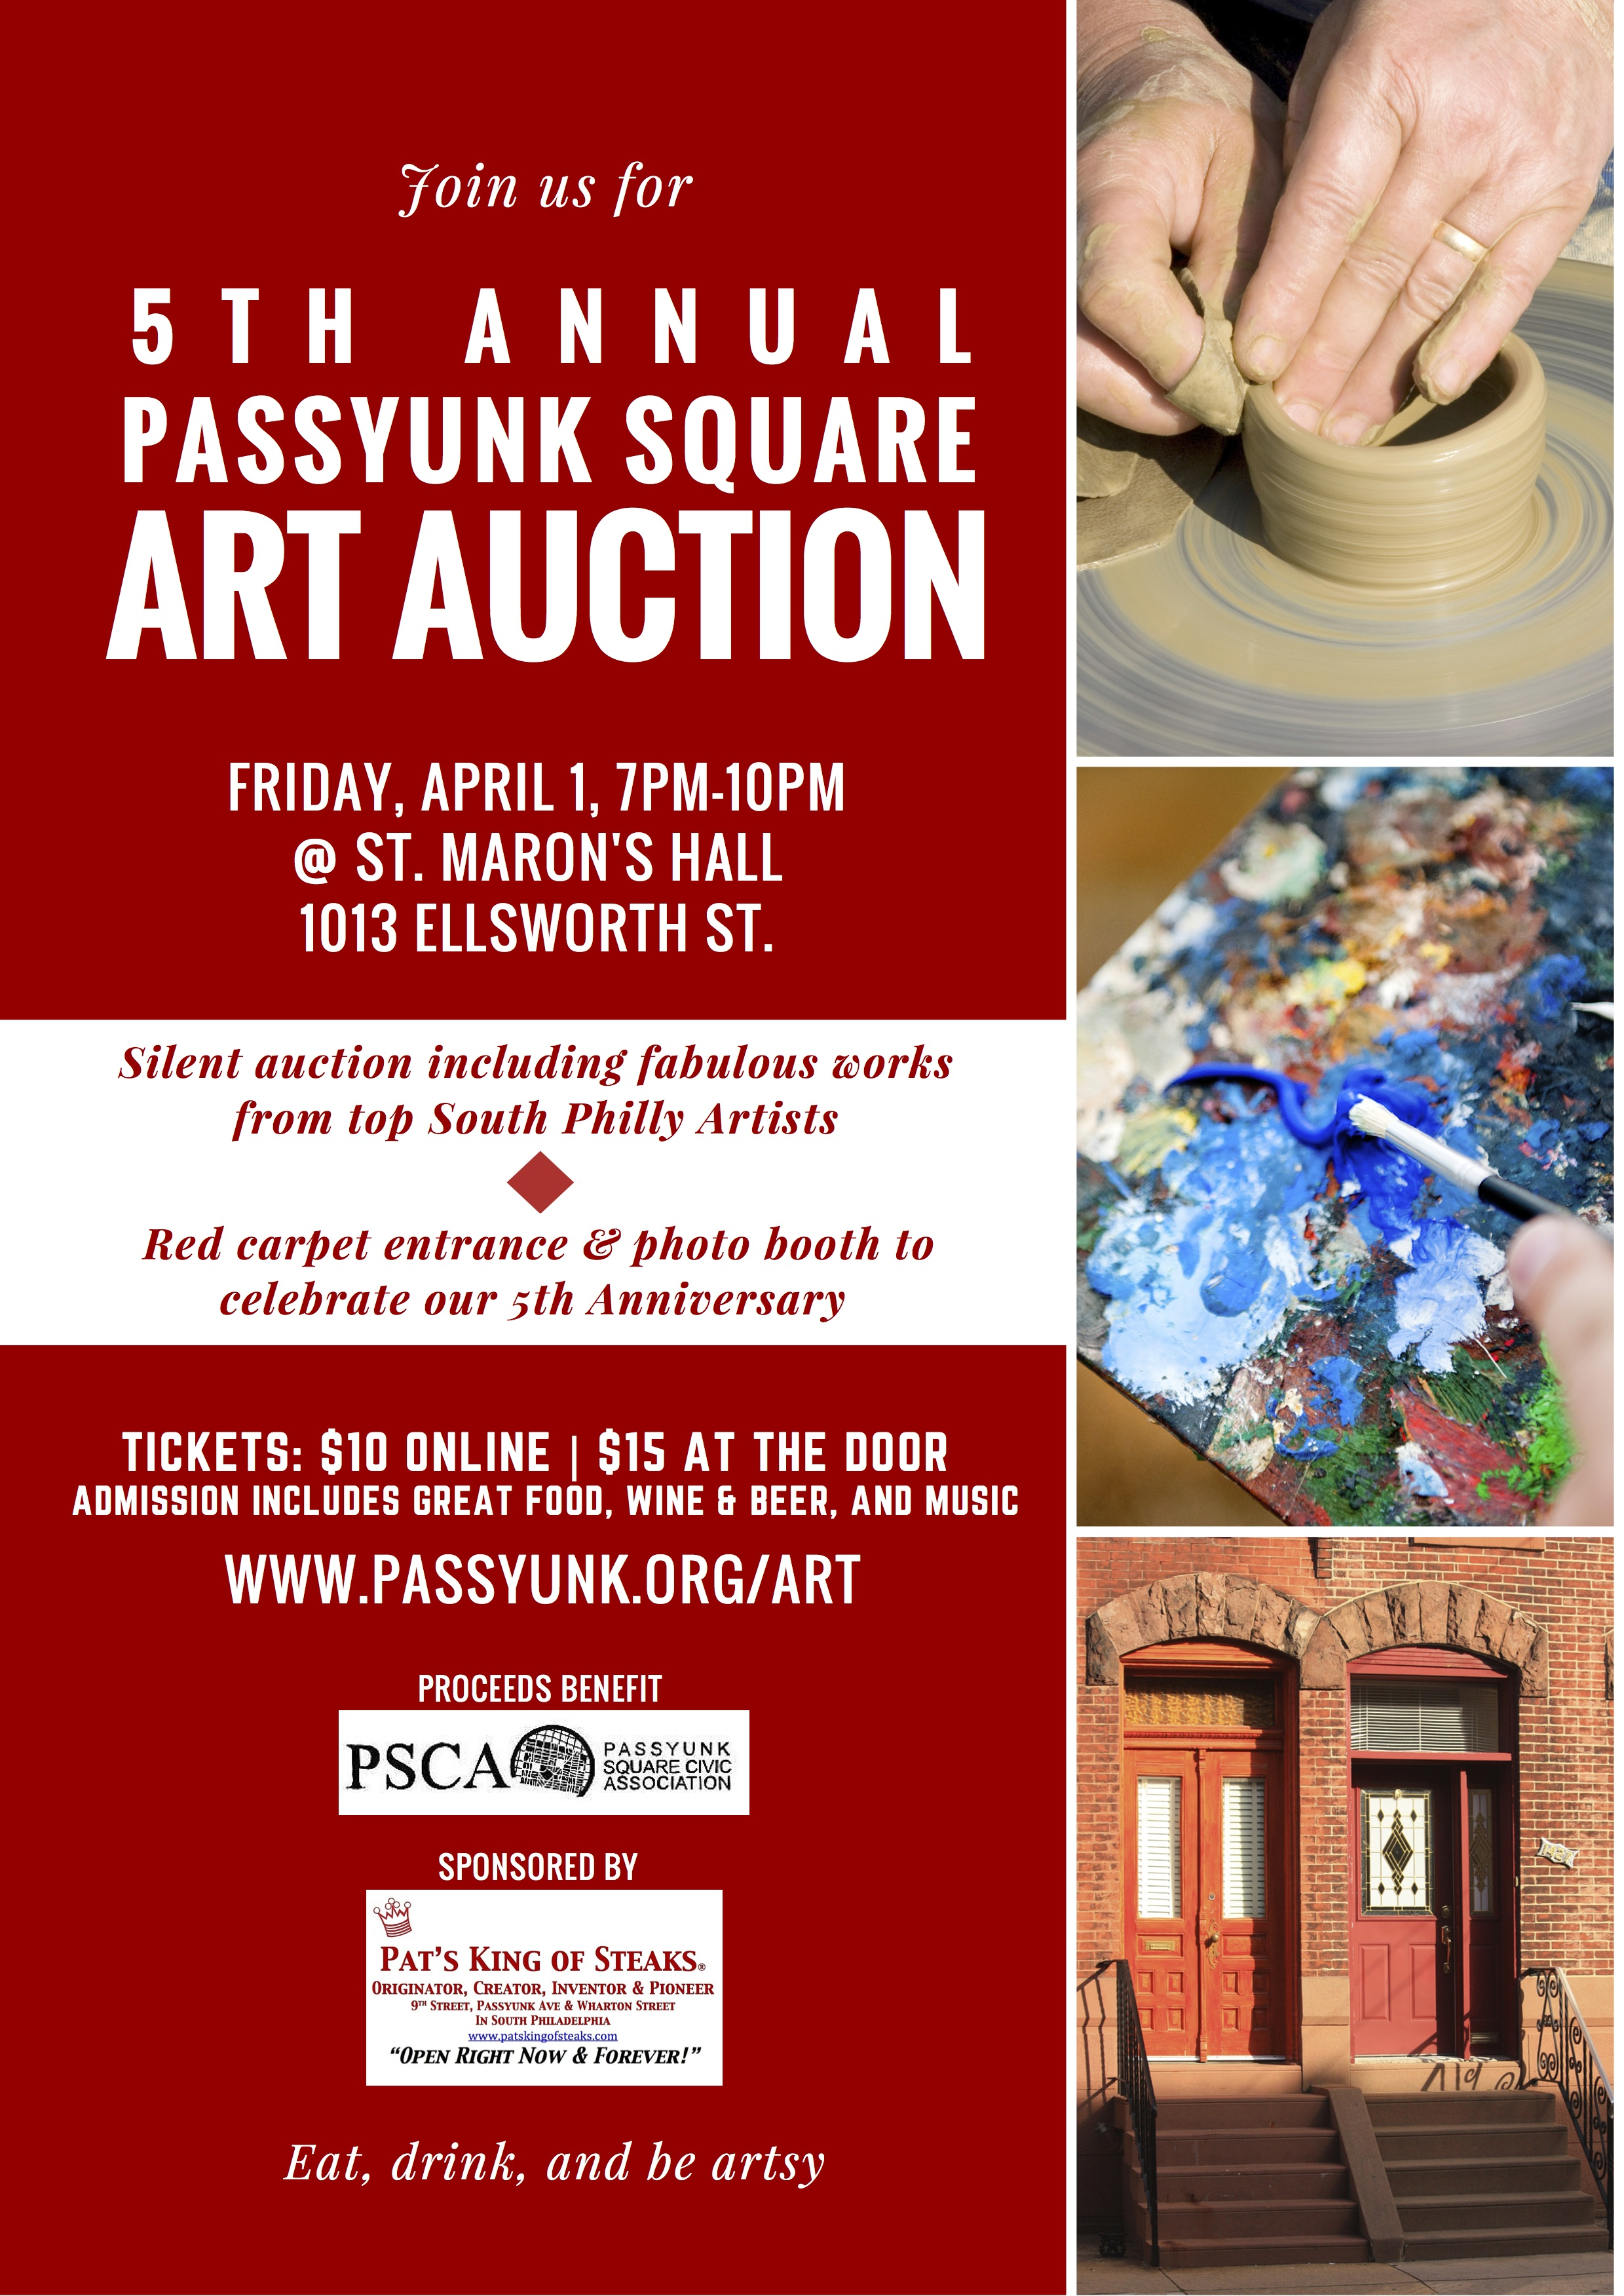 ArtAuctionFlyer2016